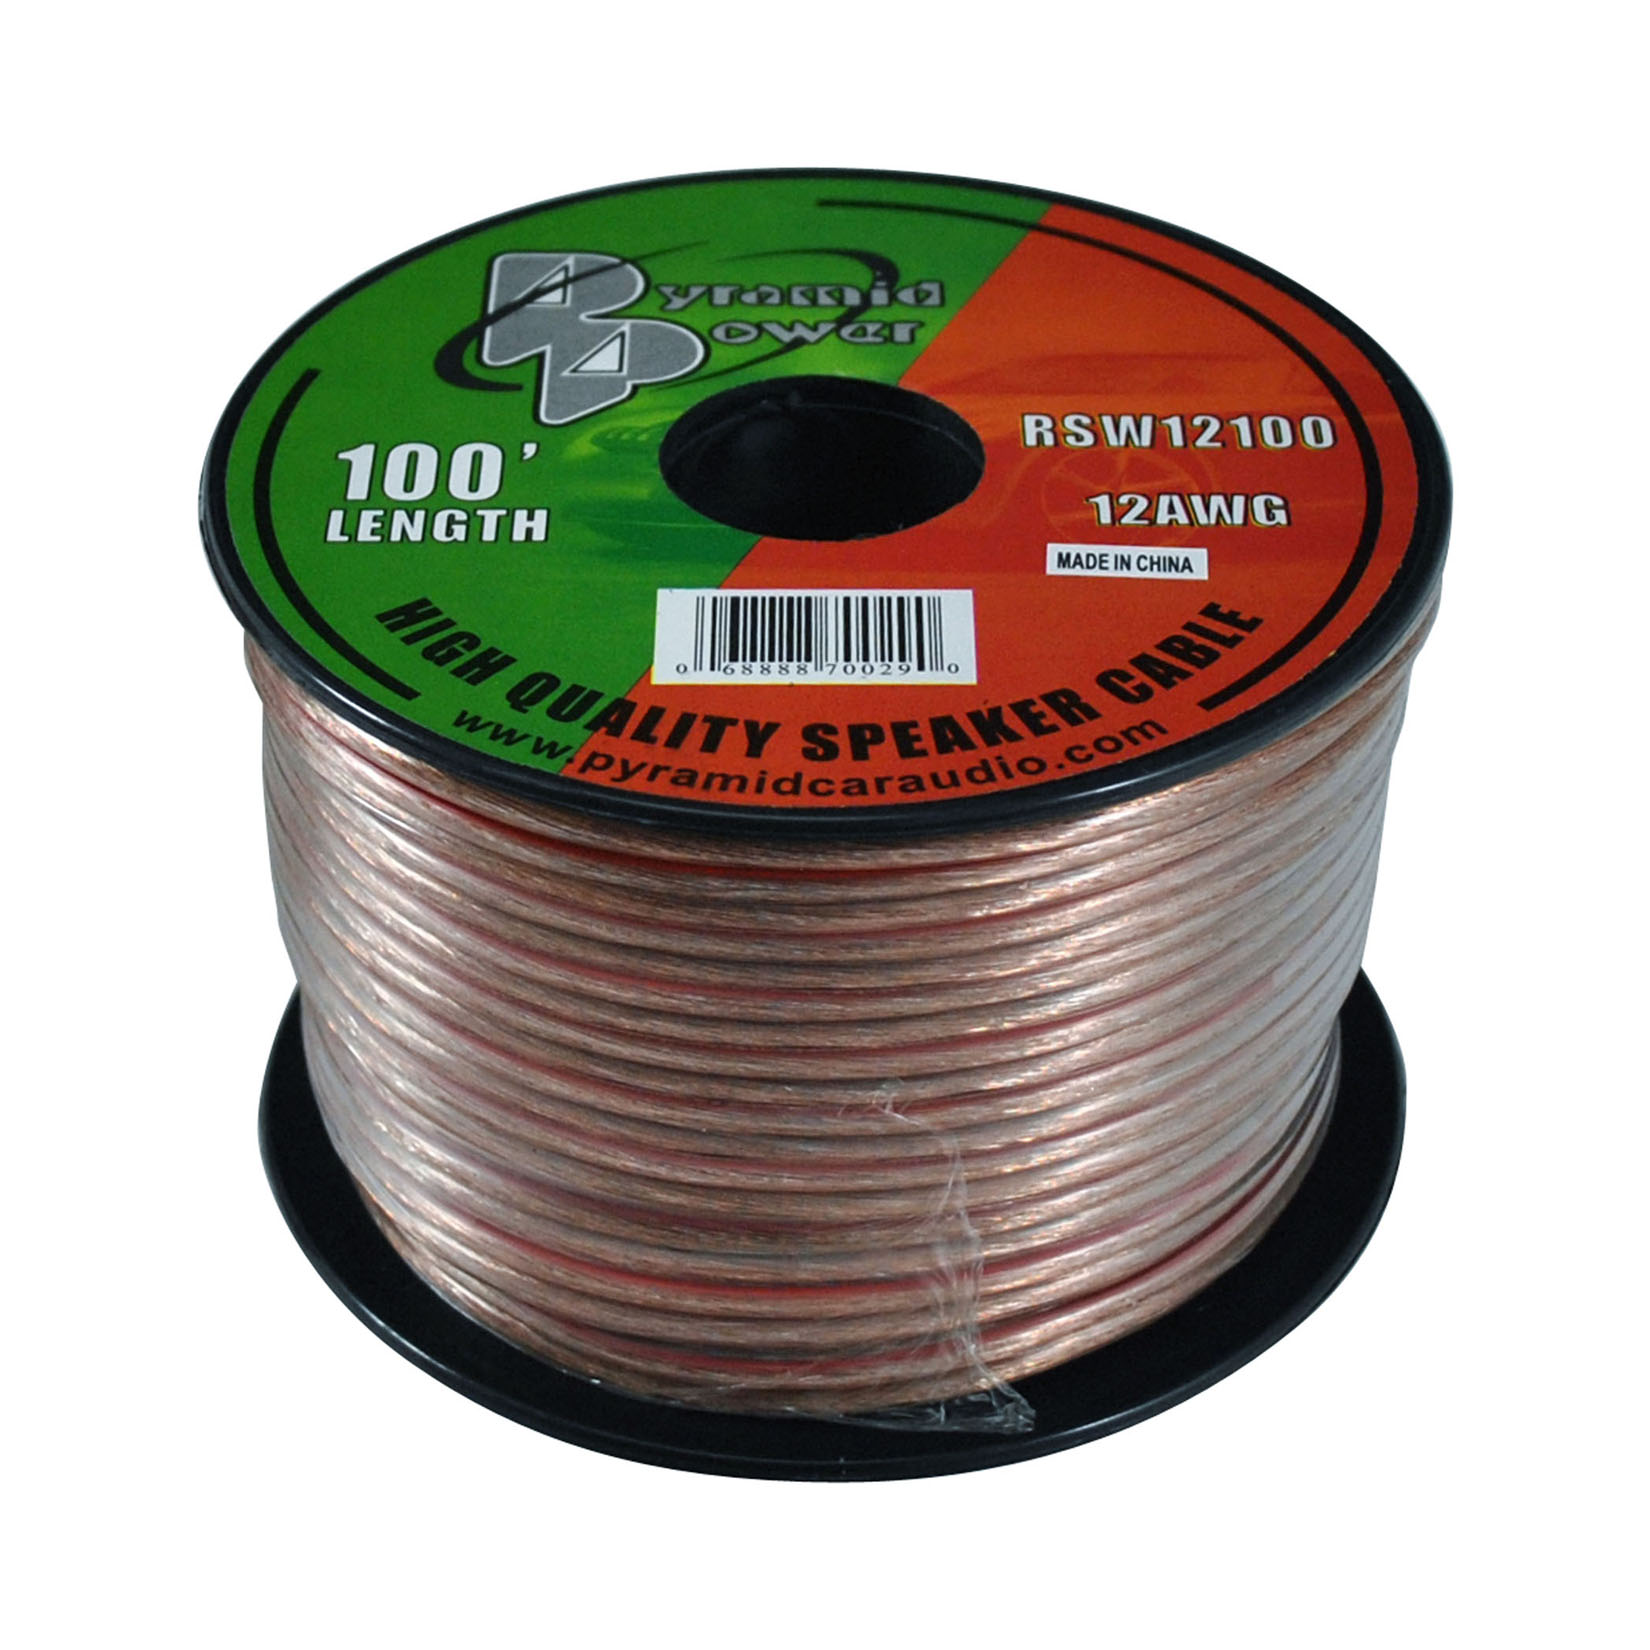 Pyramid 12 Gauge 100 ft. Spool of High Quality Speaker Zip Wire (RSW12100)